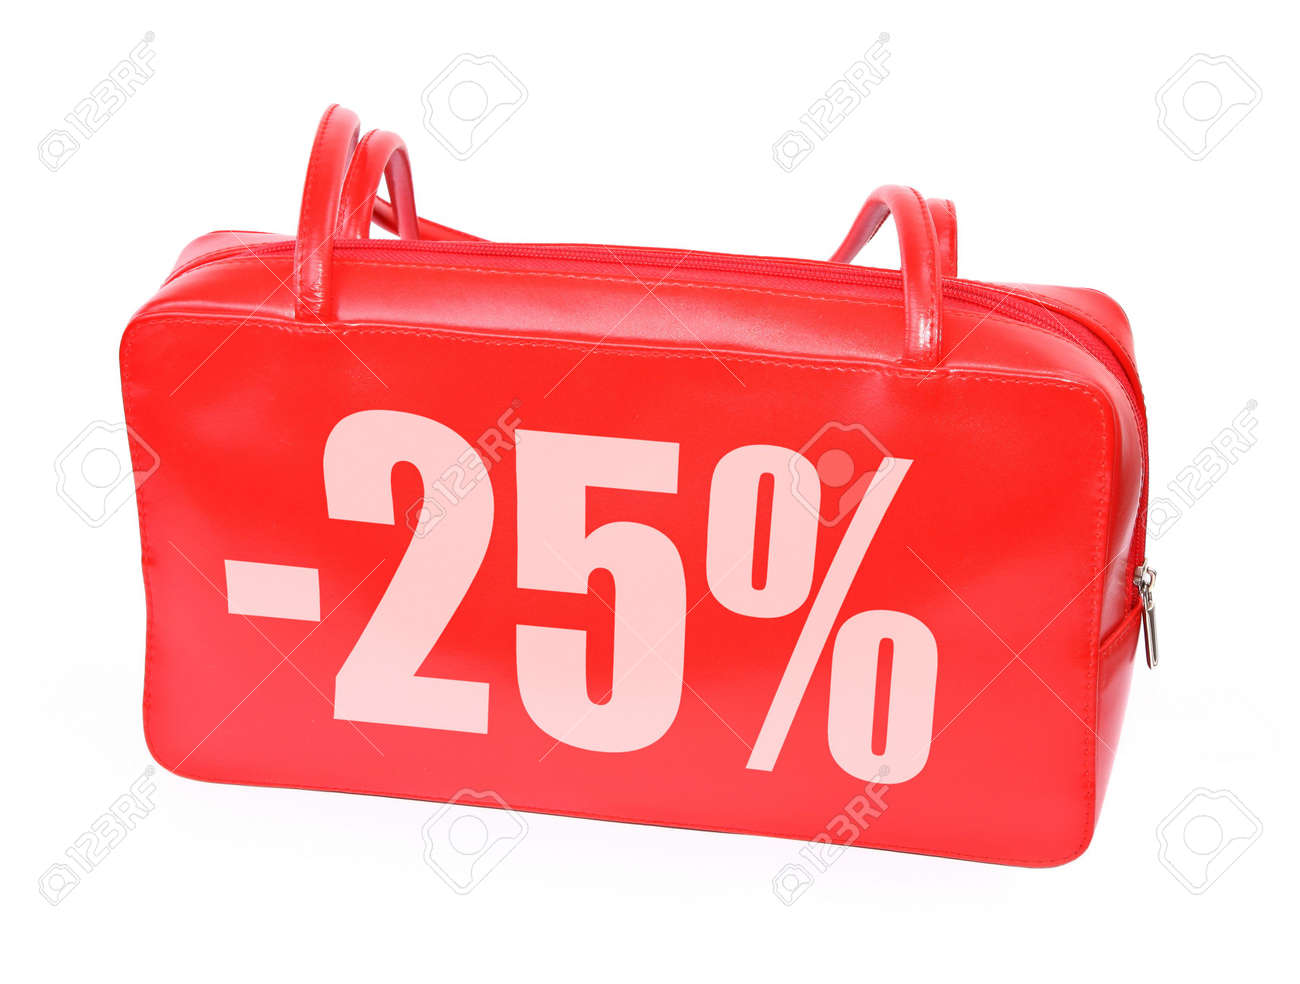 red leather handbag with sale sign on white background, photo does not infringe any copyright Stock Photo - 2643136